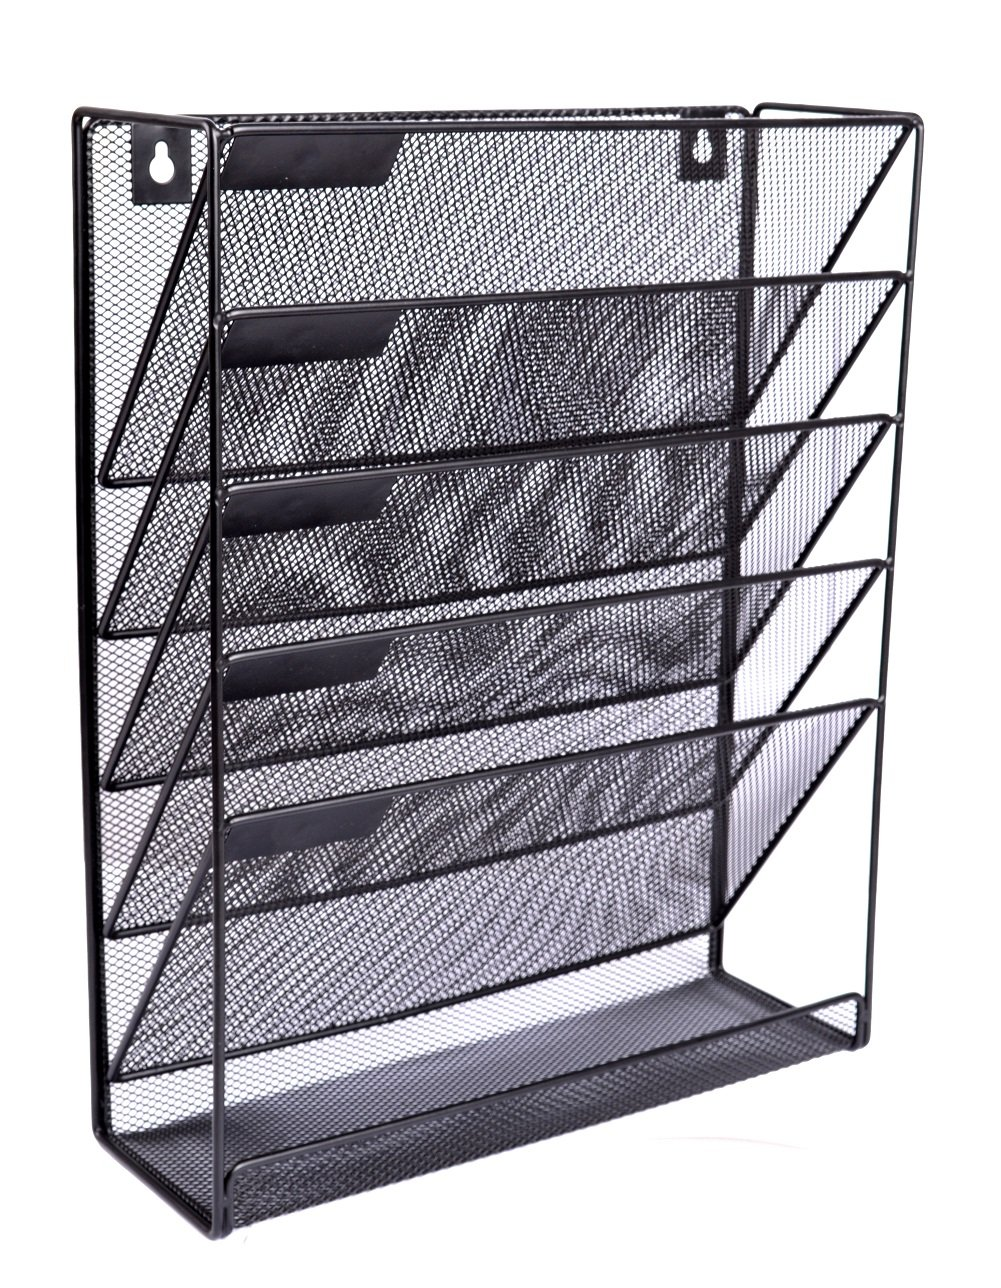 6 Tier Wall Mount Document Letter Tray Organizer by top&top (Image #1)